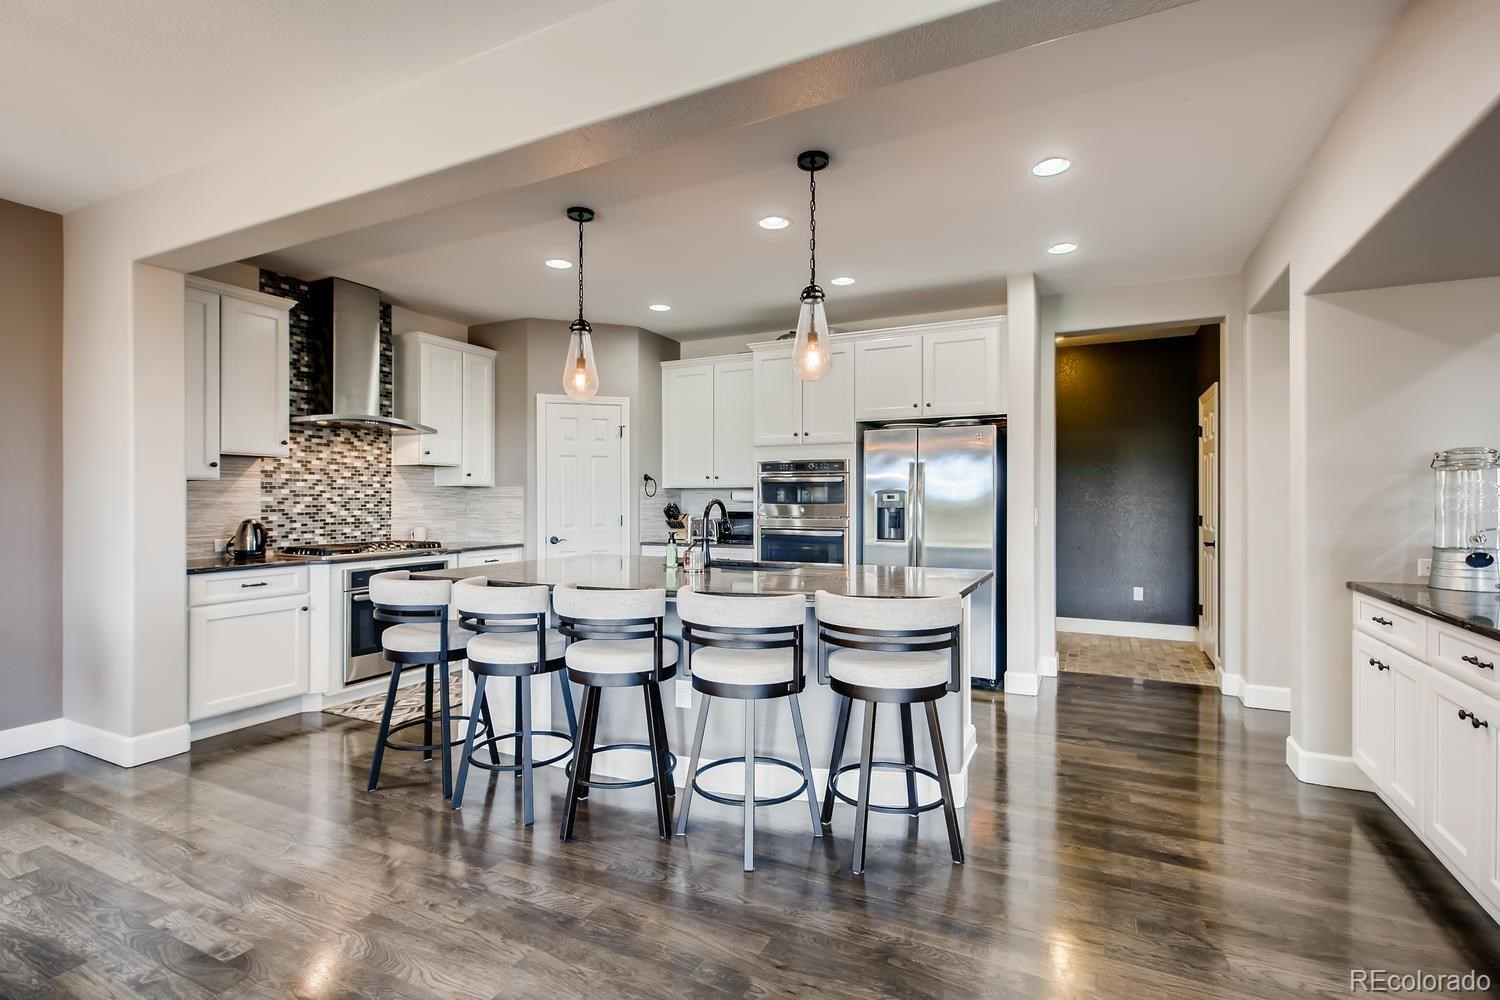 MLS# 5689224 - 7 - 10754 Greycliffe Drive, Highlands Ranch, CO 80126